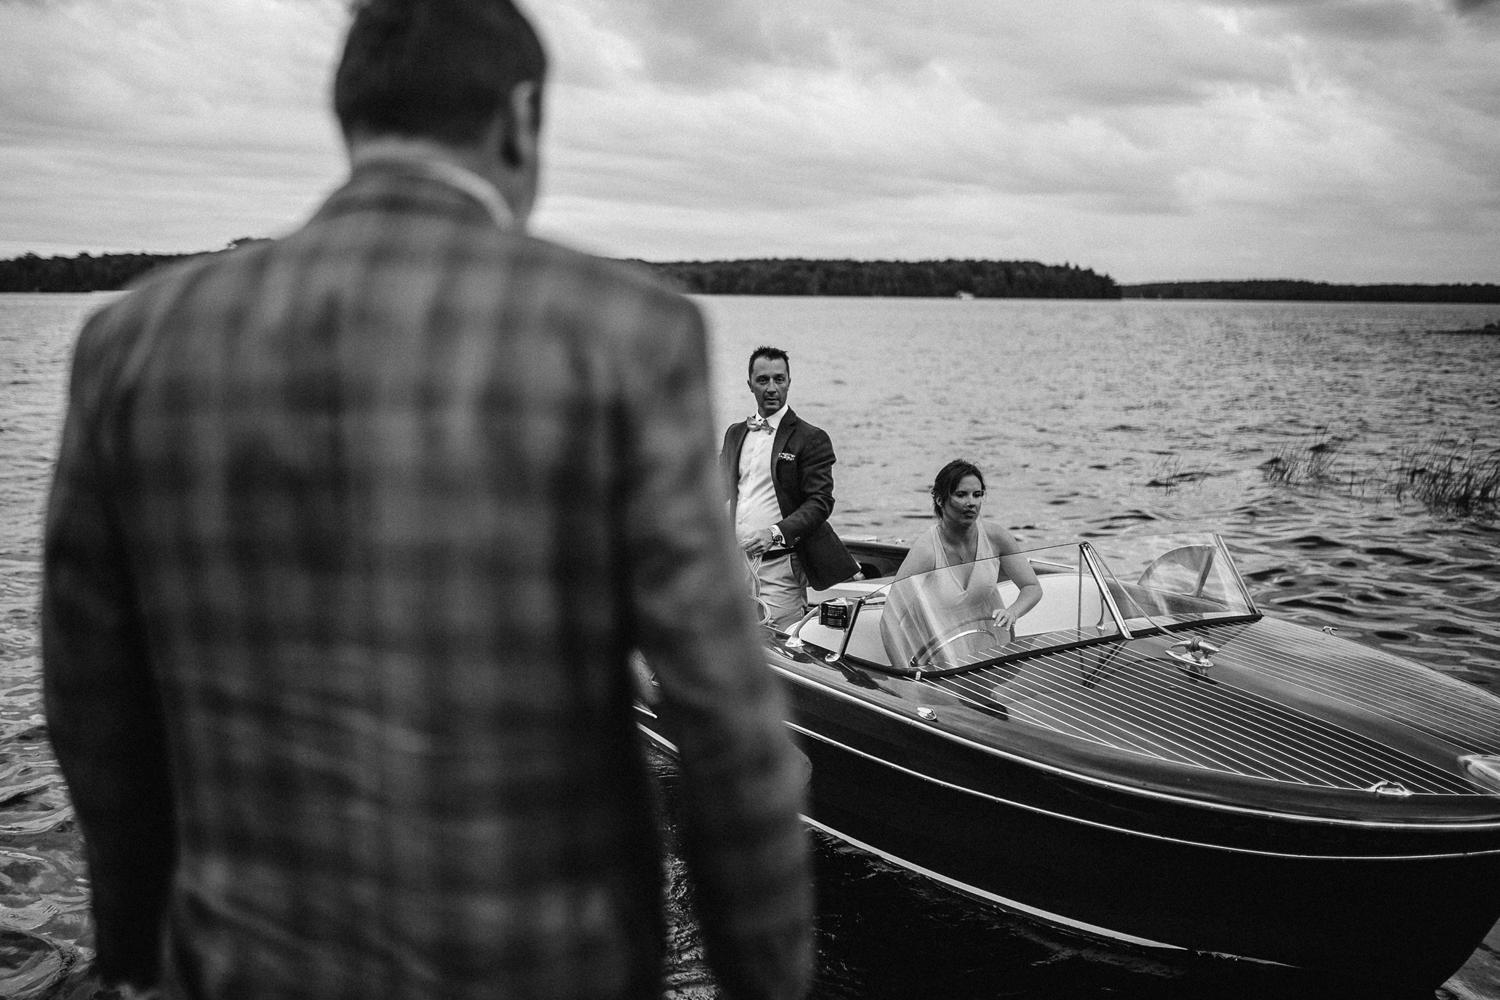 kerry ford photography - small intimate backyard rideau lake island wedding perth ontario-122.jpg